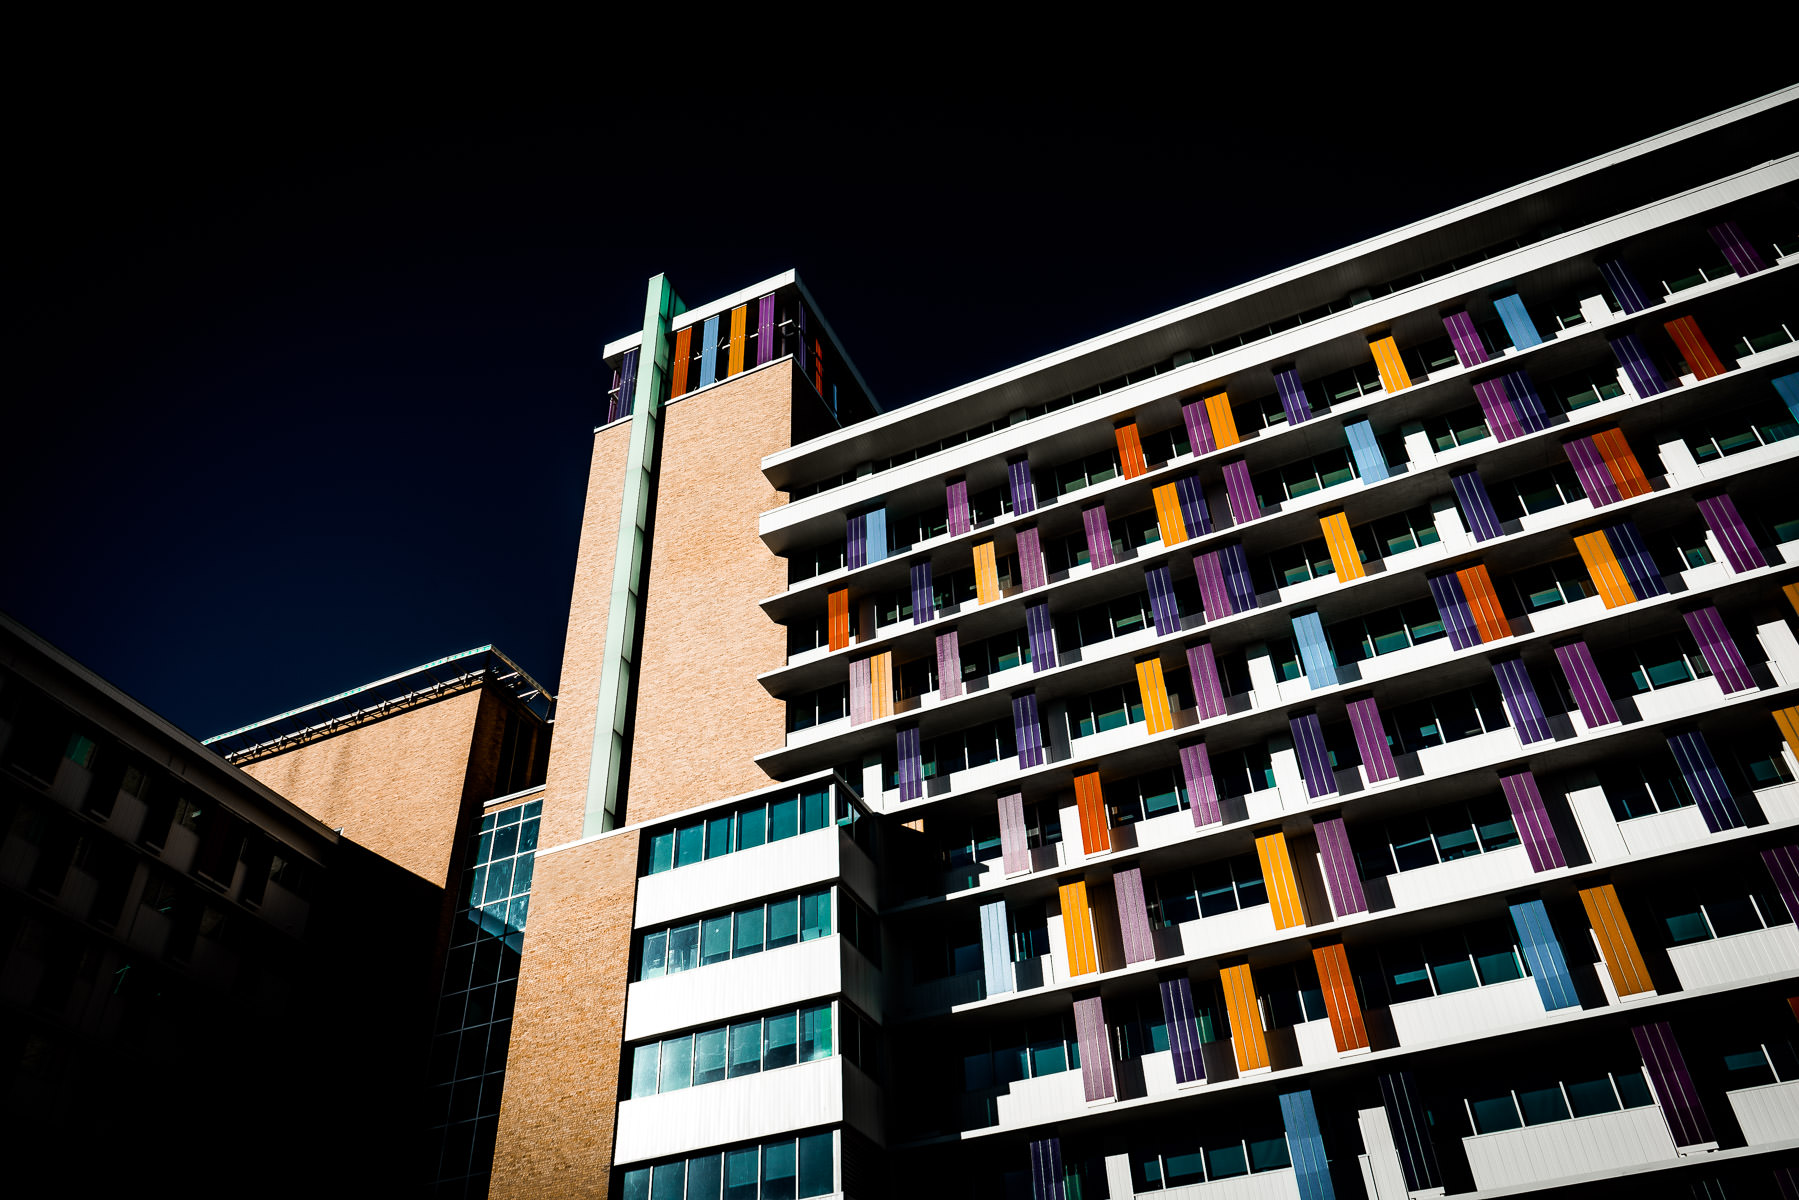 The multi-colored facade of the Children's Hospital of San Antonio, Texas.